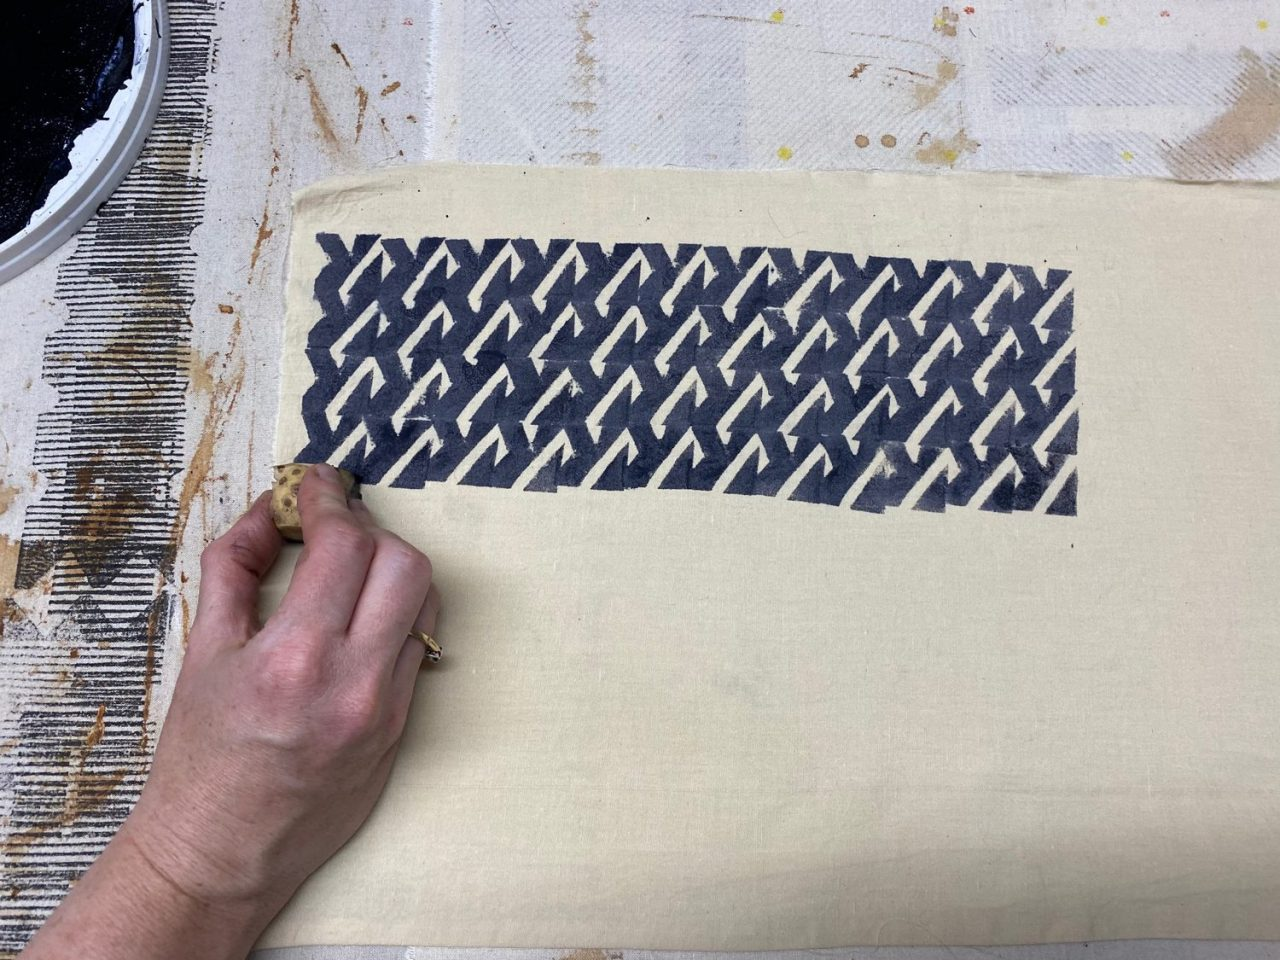 A hand using a block to create a print on fabric